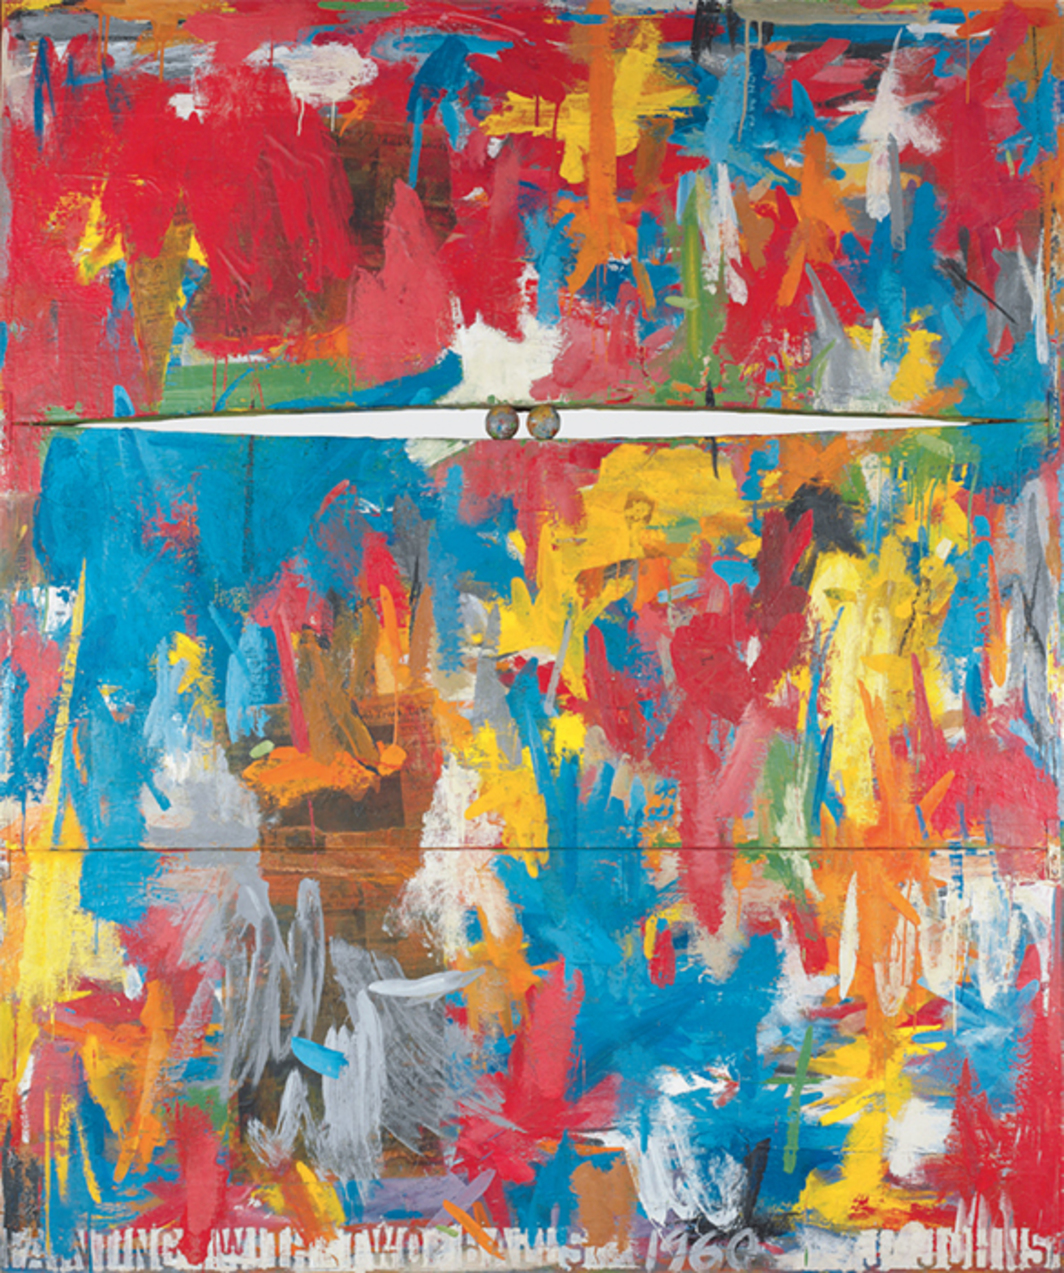 "Jasper Johns, Painting with Two Balls, 1960, encaustic and collage on canvas, wooden balls, 65 × 54 1/8"". © Jasper Johns/VAGA, New York/DACS, London."